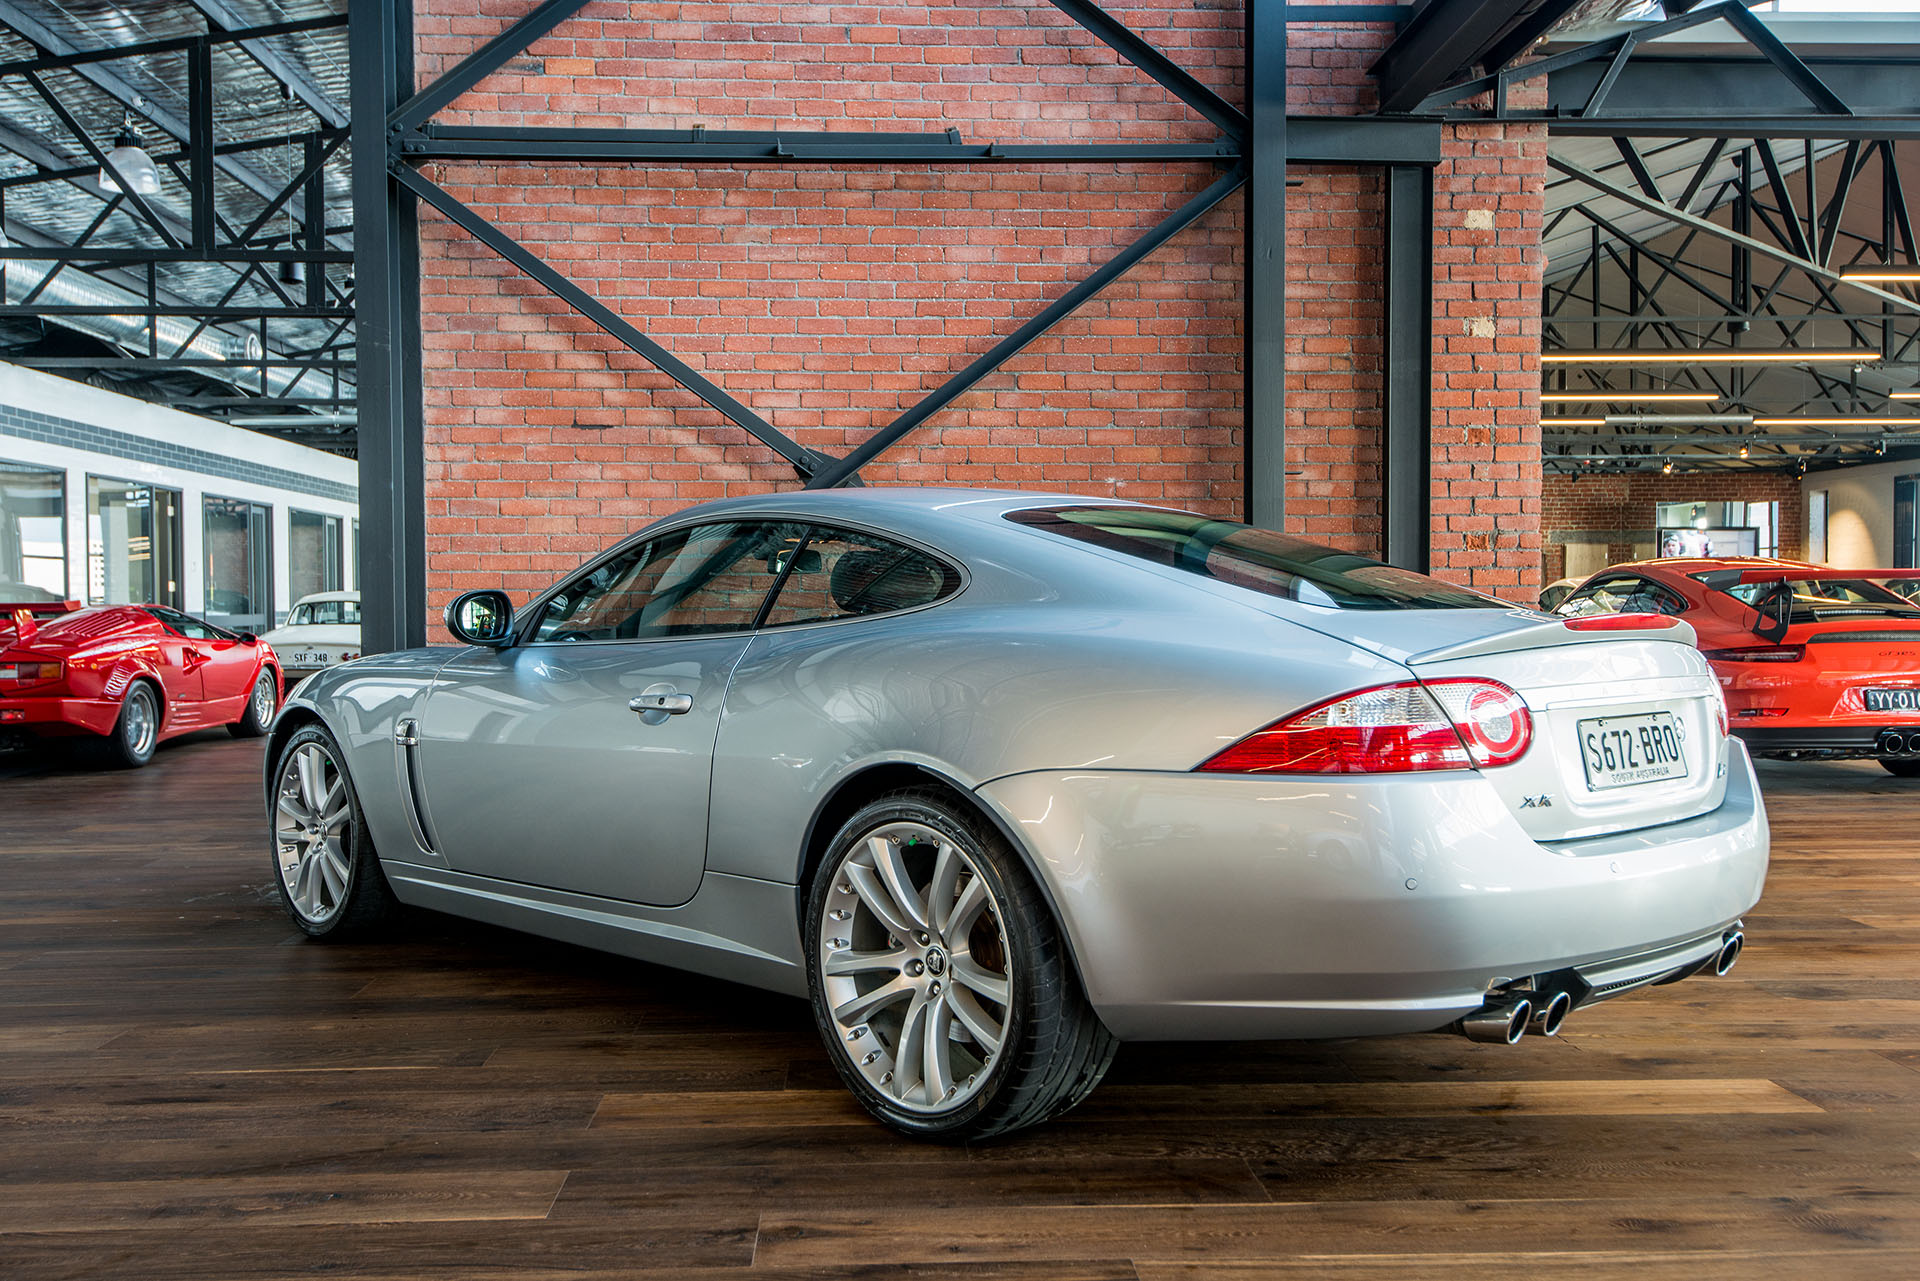 2007 Jaguar XKR Coupe - Richmonds - Classic and Prestige Cars - Storage and Sales - Adelaide ...